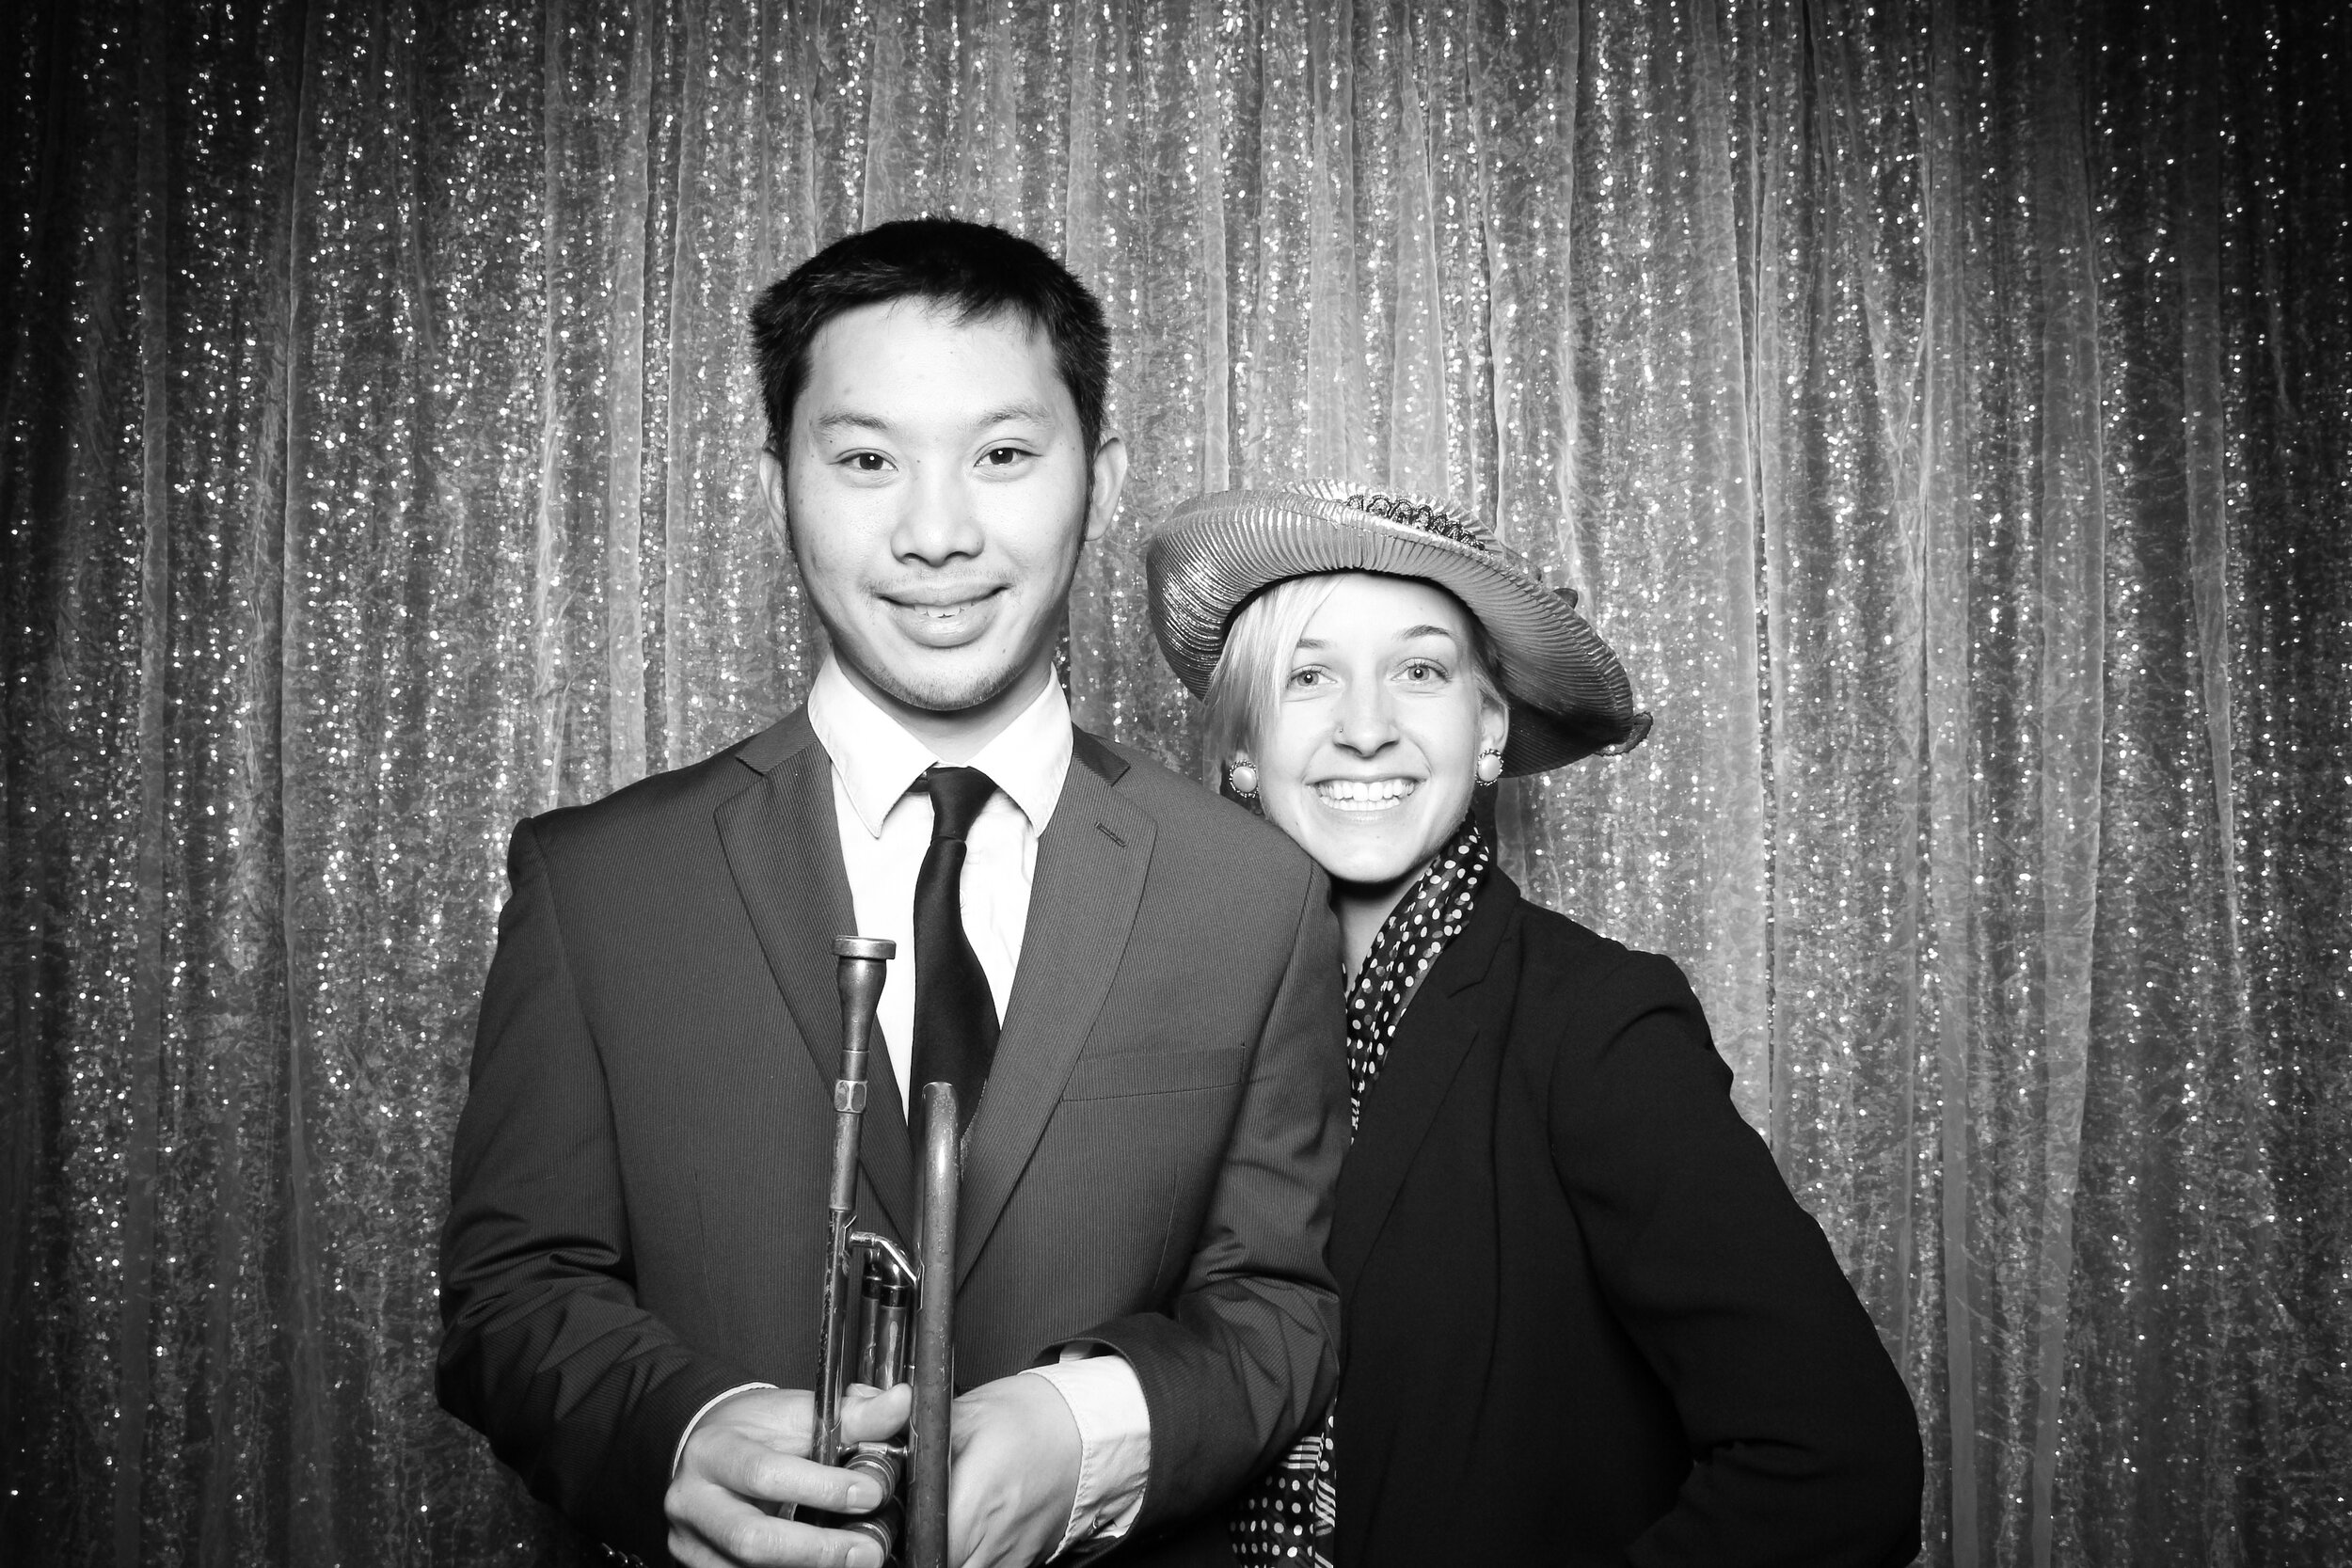 Chicago_Vintage_Wedding_Photobooth_House_of_Blues_15.jpg